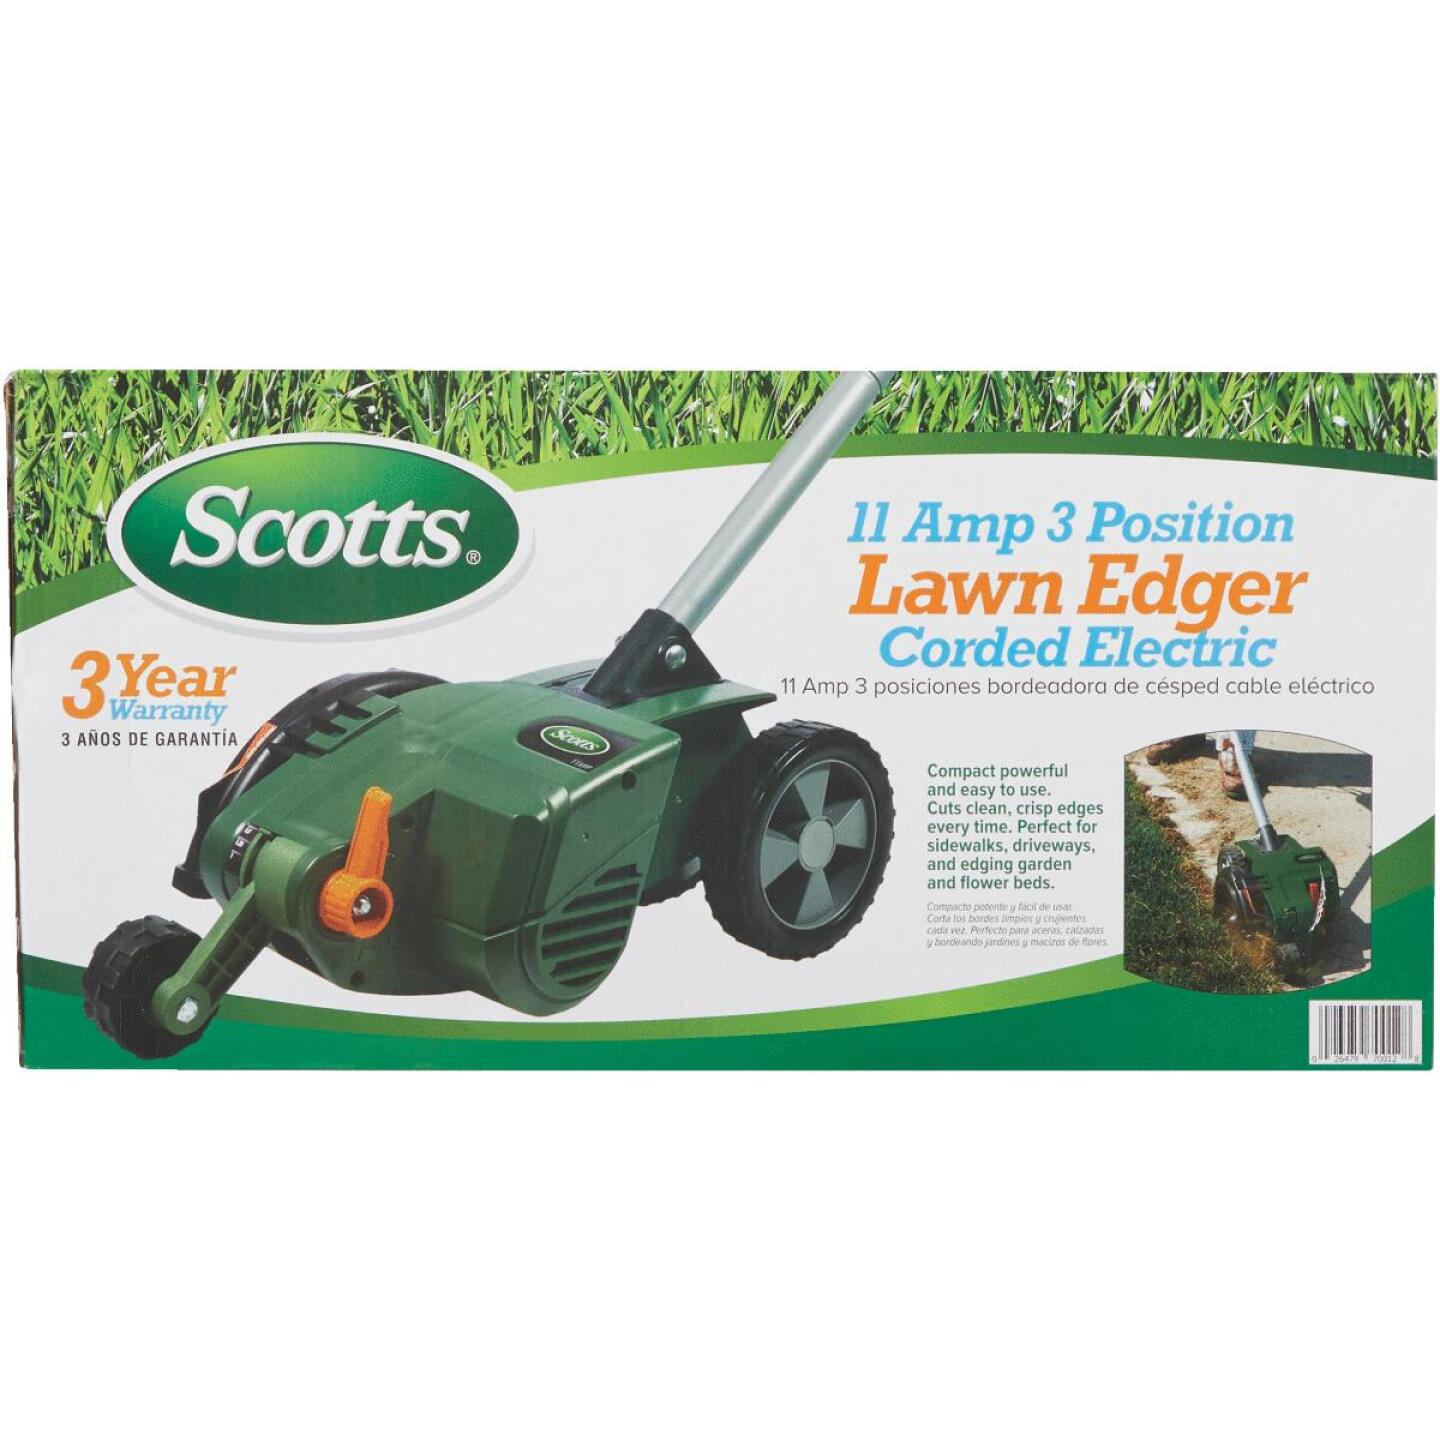 Scotts 7.5 In. 11 Amp Corded Electric Lawn Edger Image 2